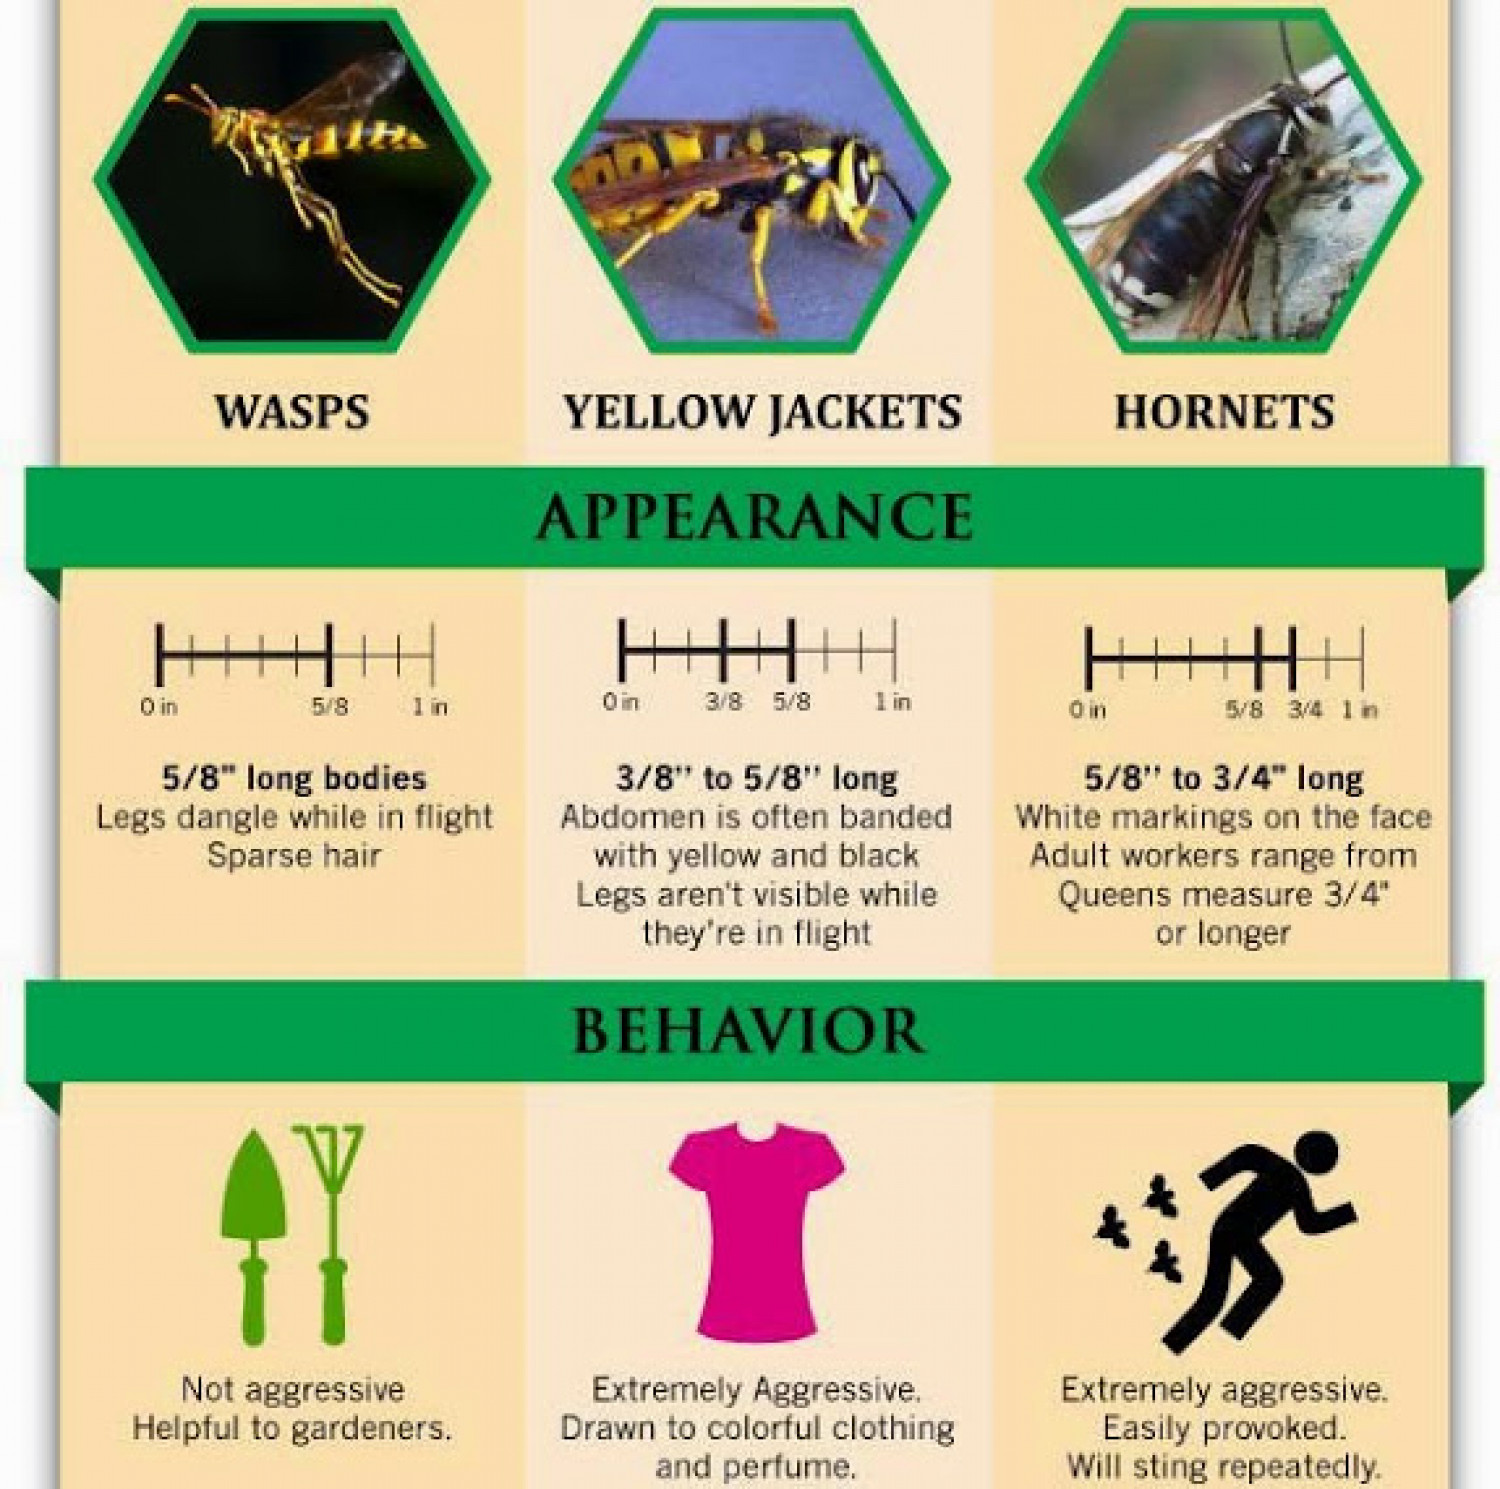 The Proper Way to Handle Wasps and Bees Infographic